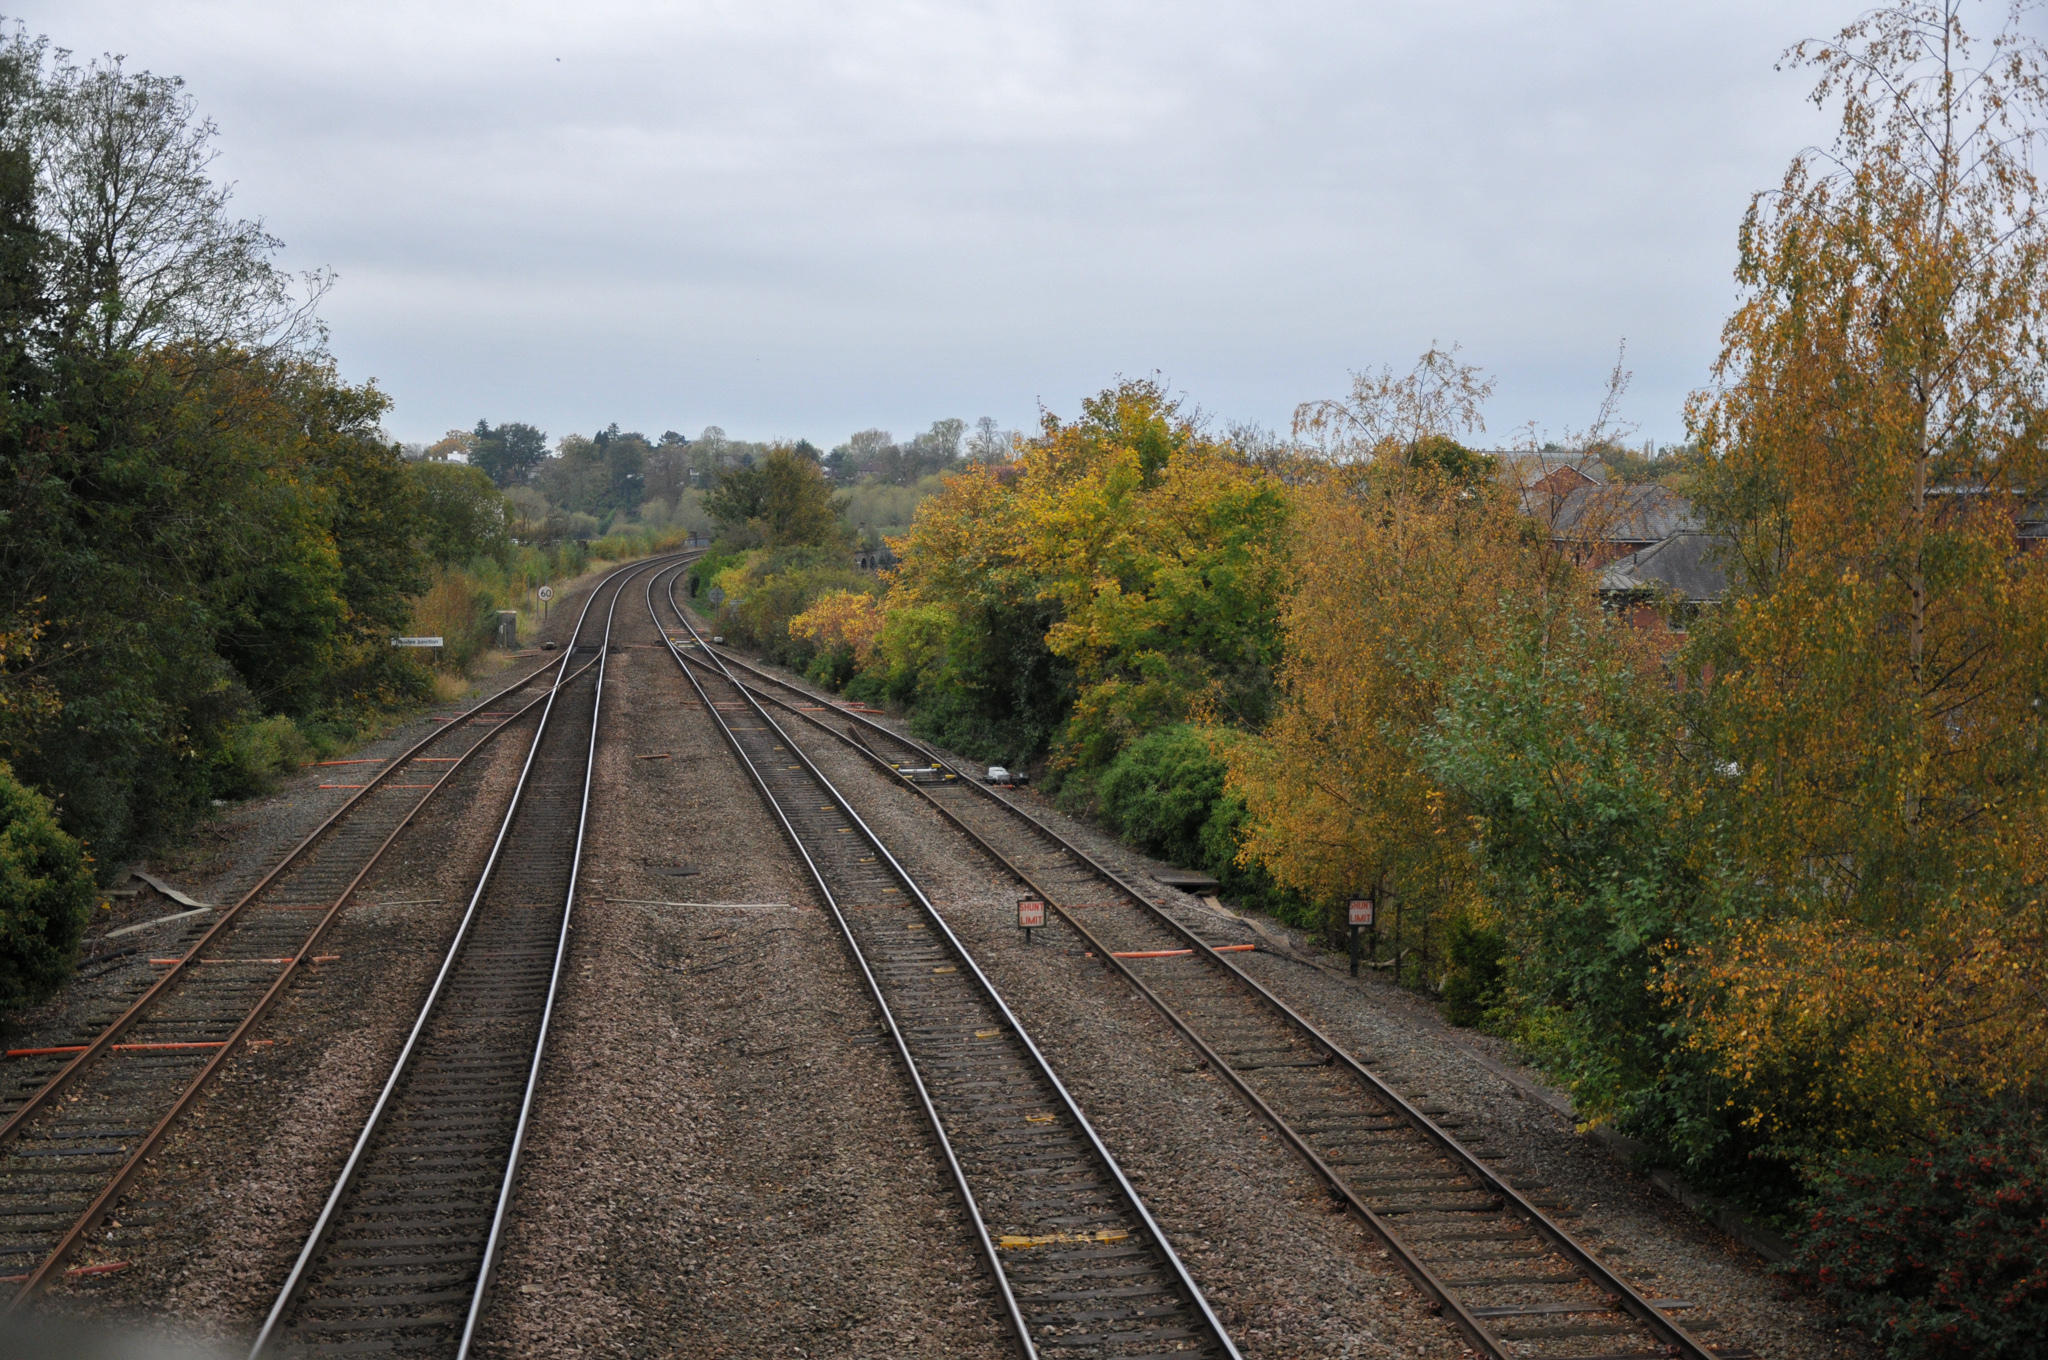 Man strayed onto railway tracks in Deeside because he wanted to 'walk to Chester'